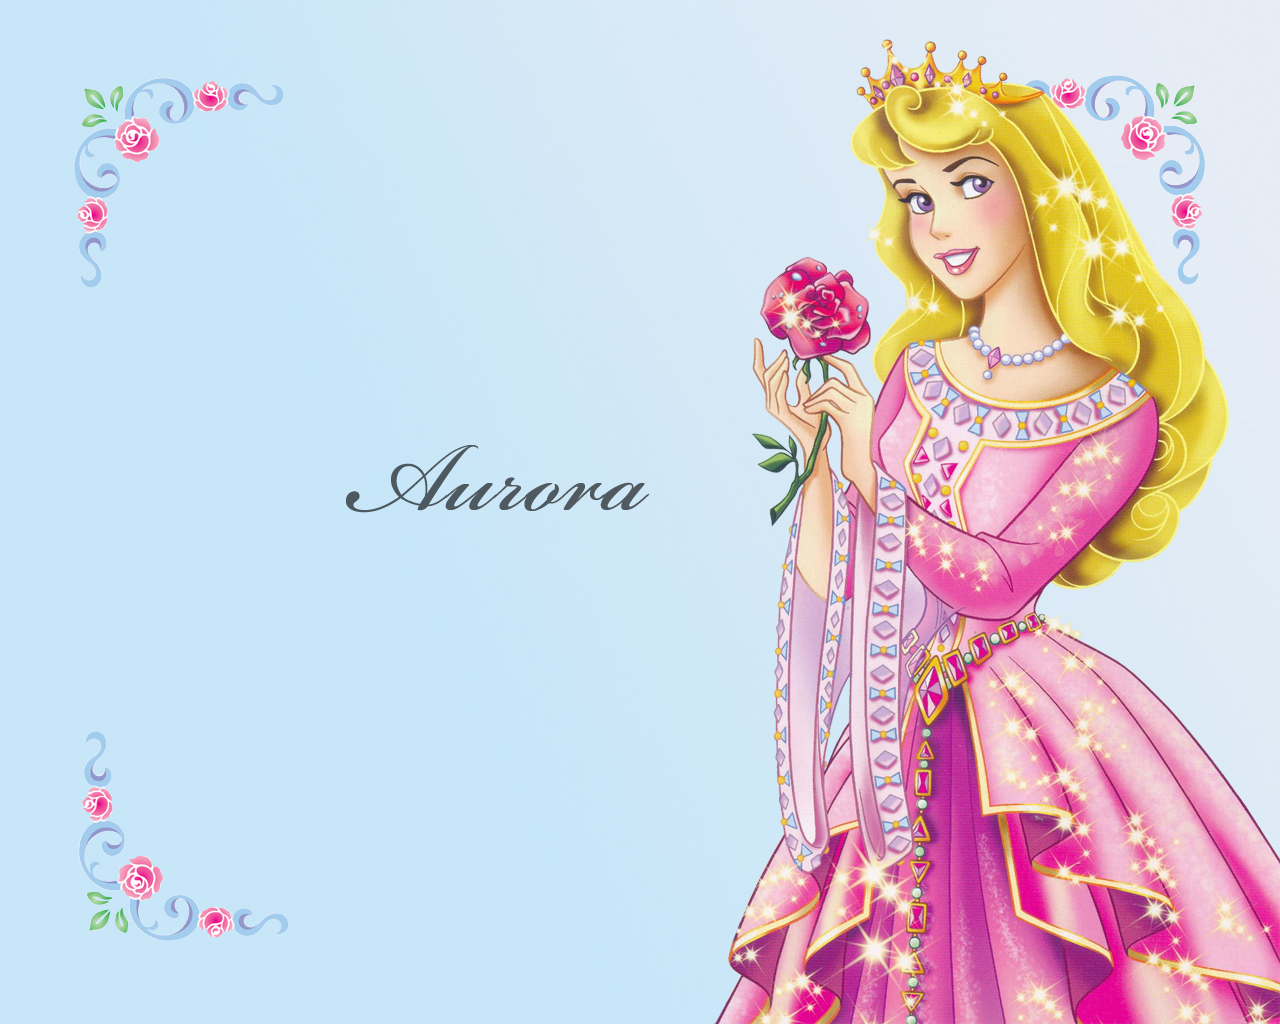 Princess Aurora - Princess Aurora Wallpaper (10402712) - Fanpop - Page ...